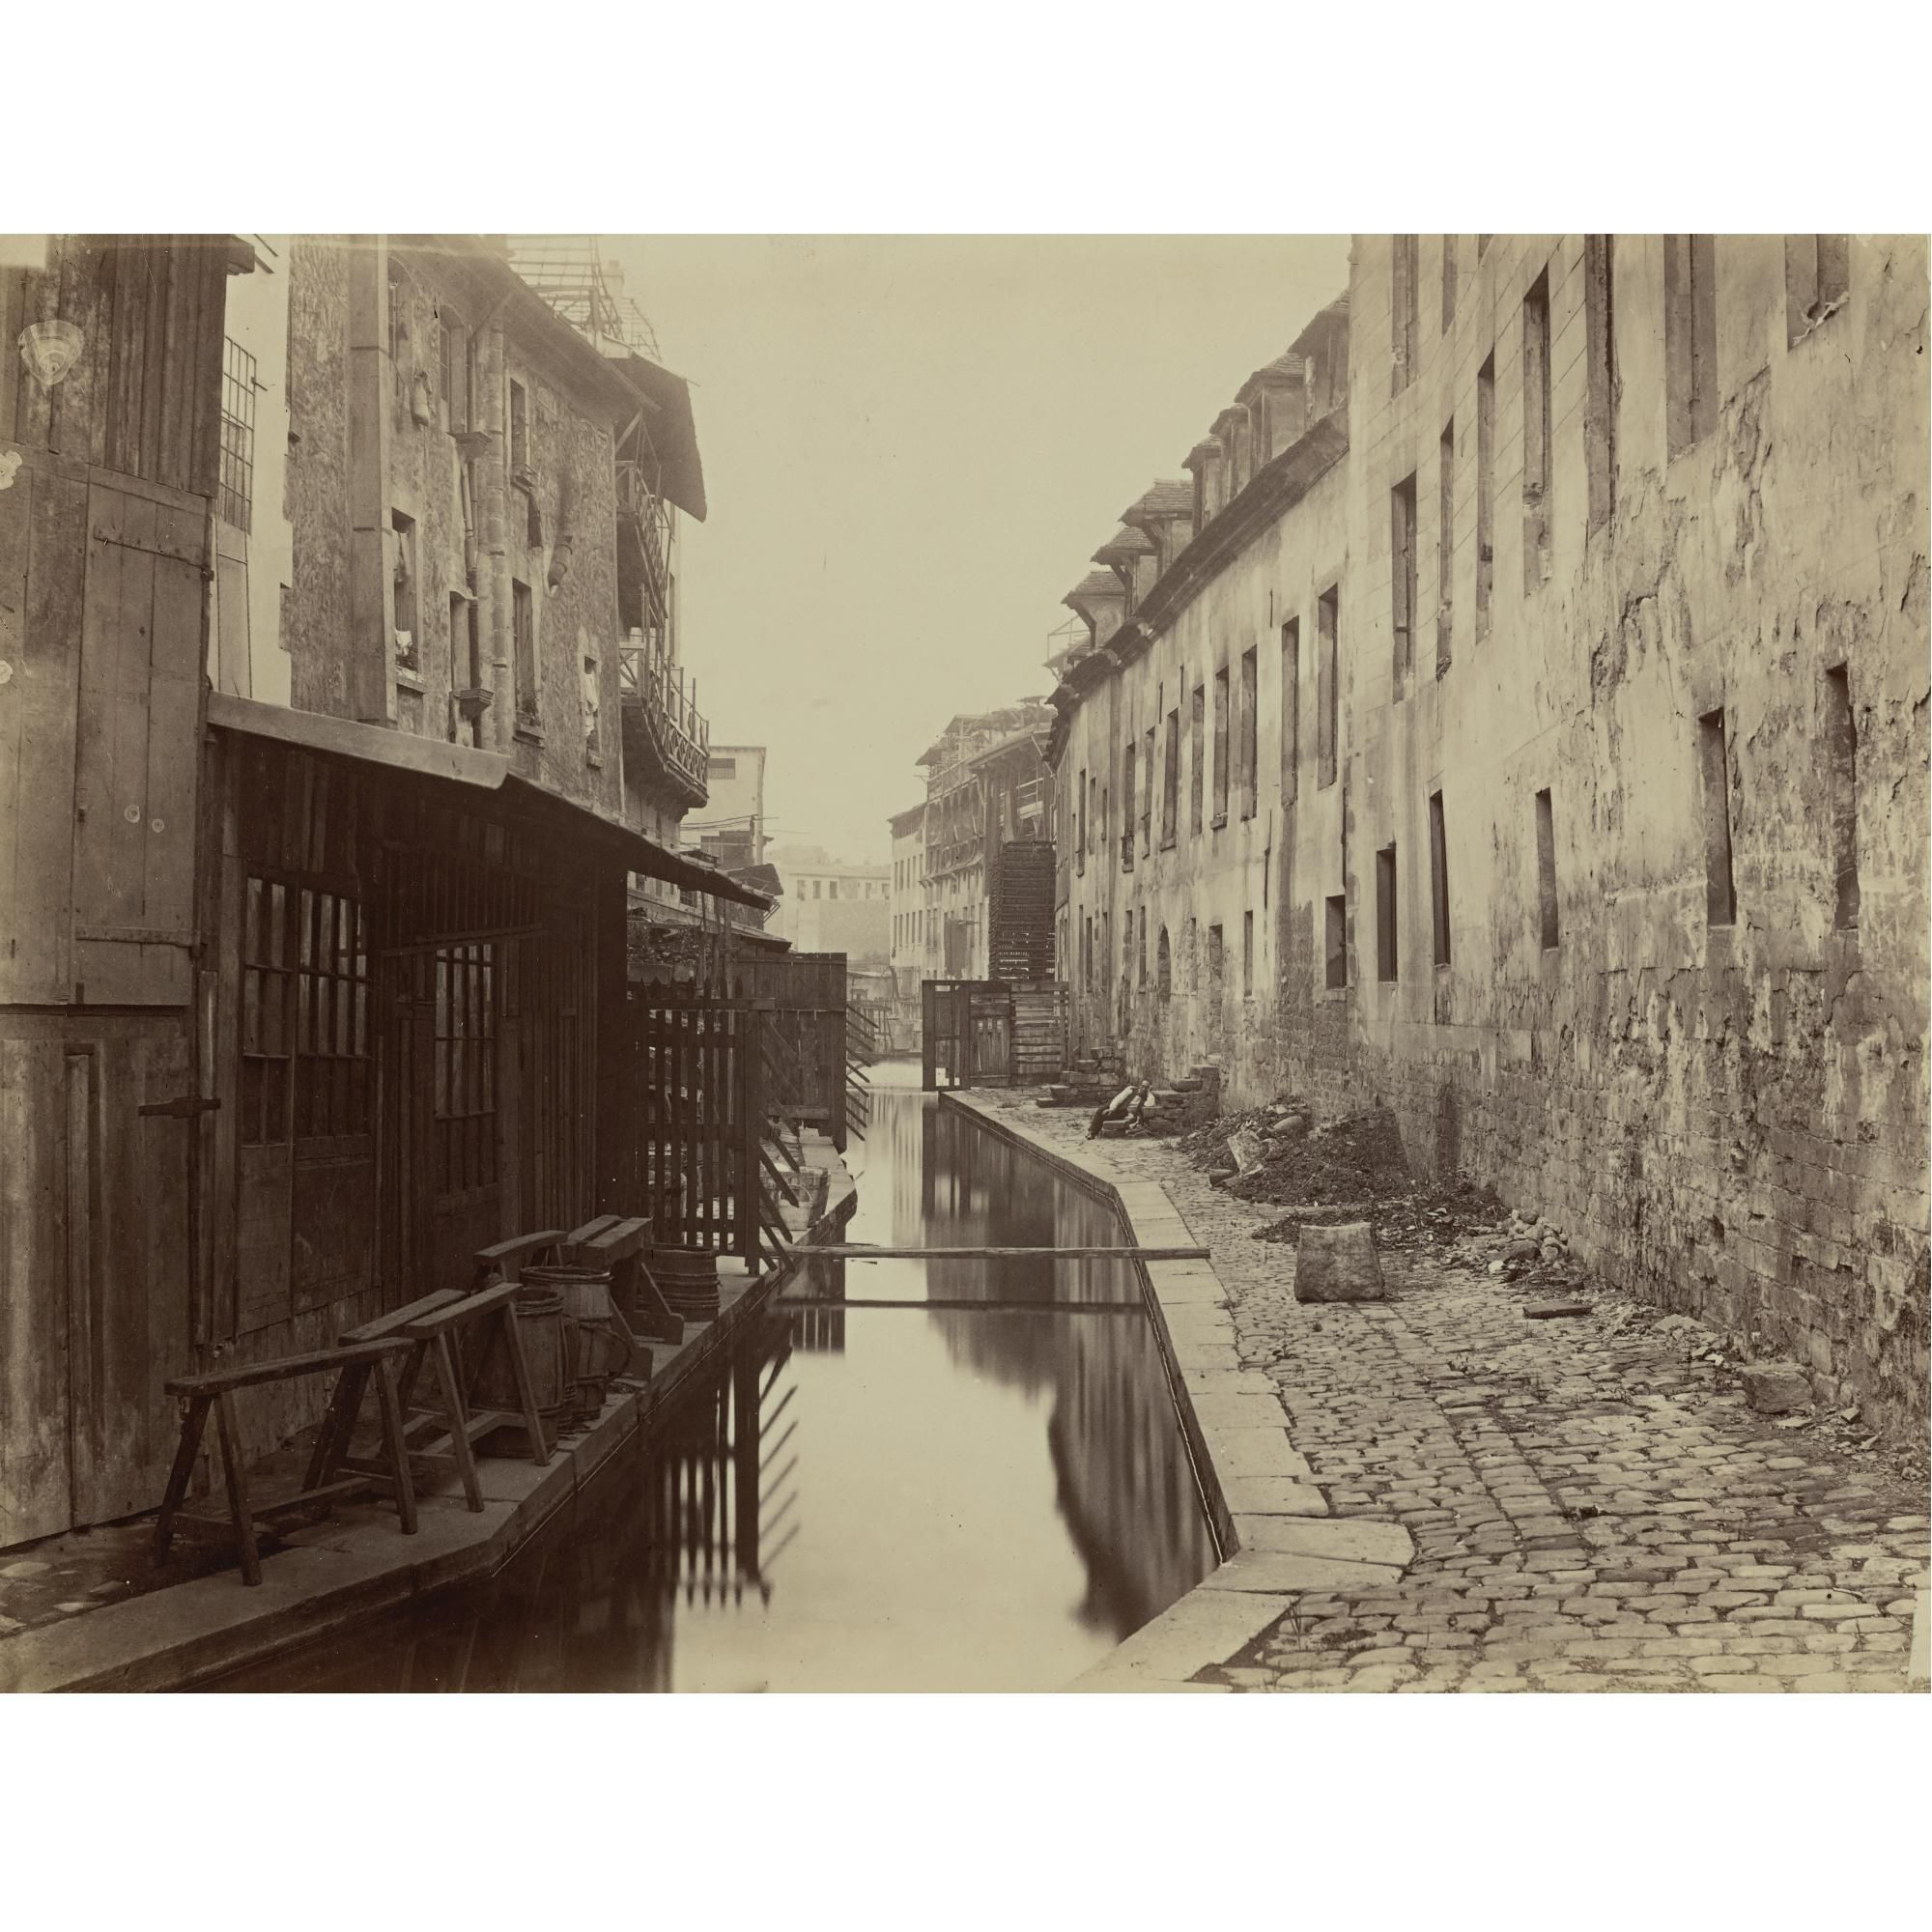 Charles Marville - Paris, la Bievre between Pascal and Cochin streets